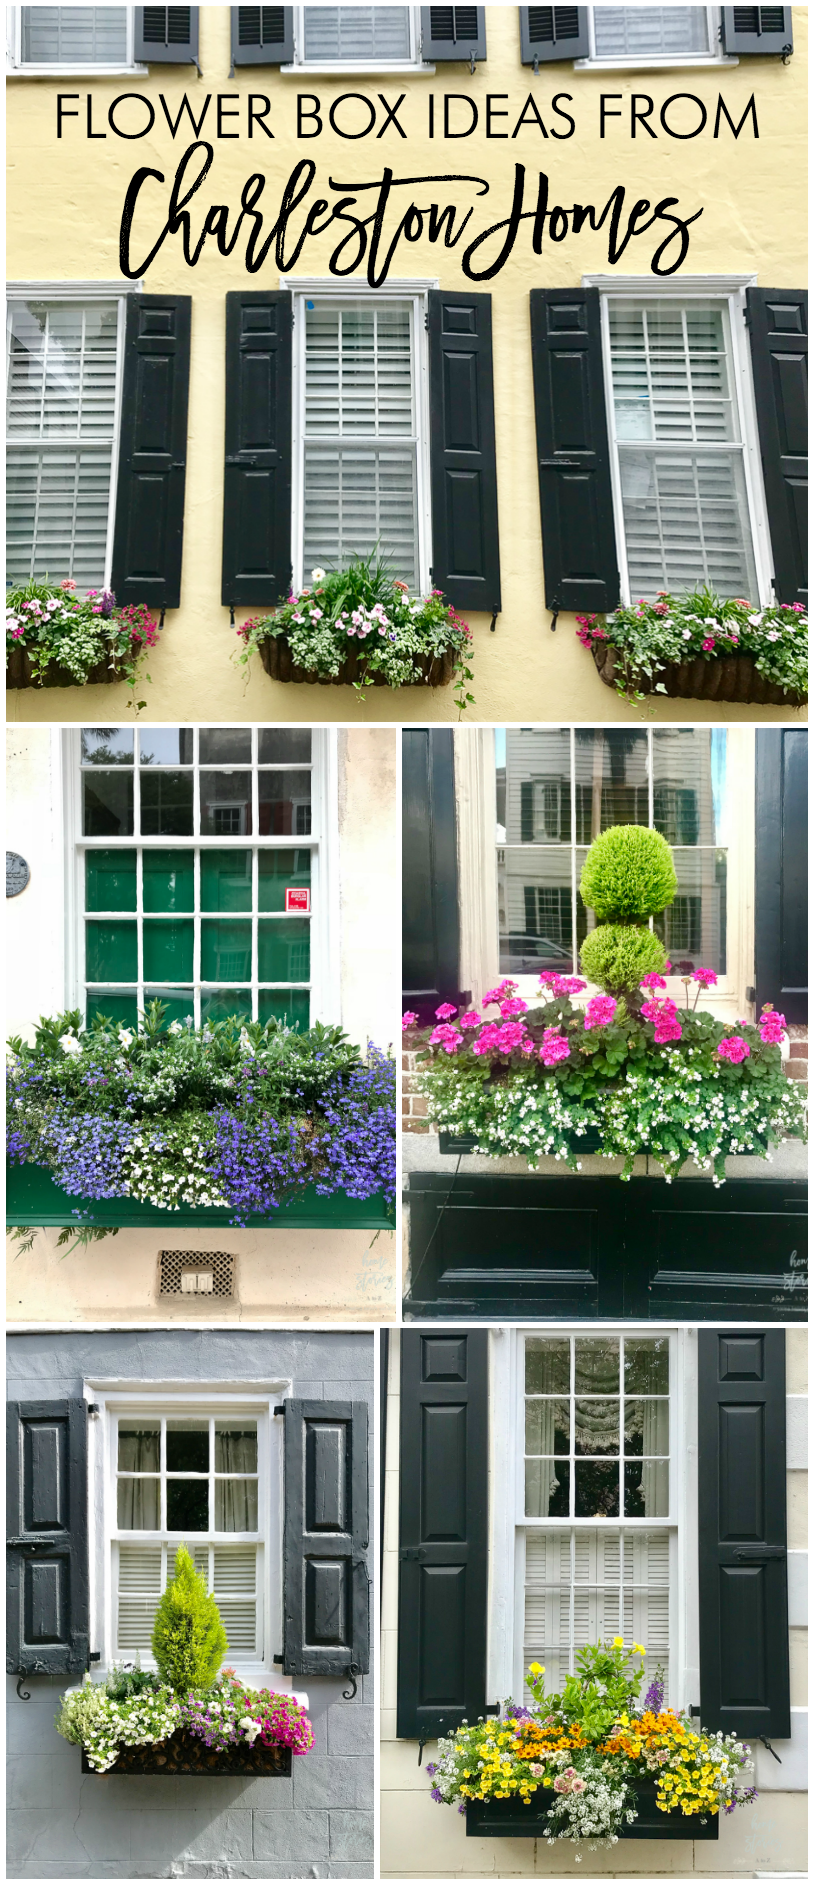 flower box ideas flower box inspiration charleston flower boxes